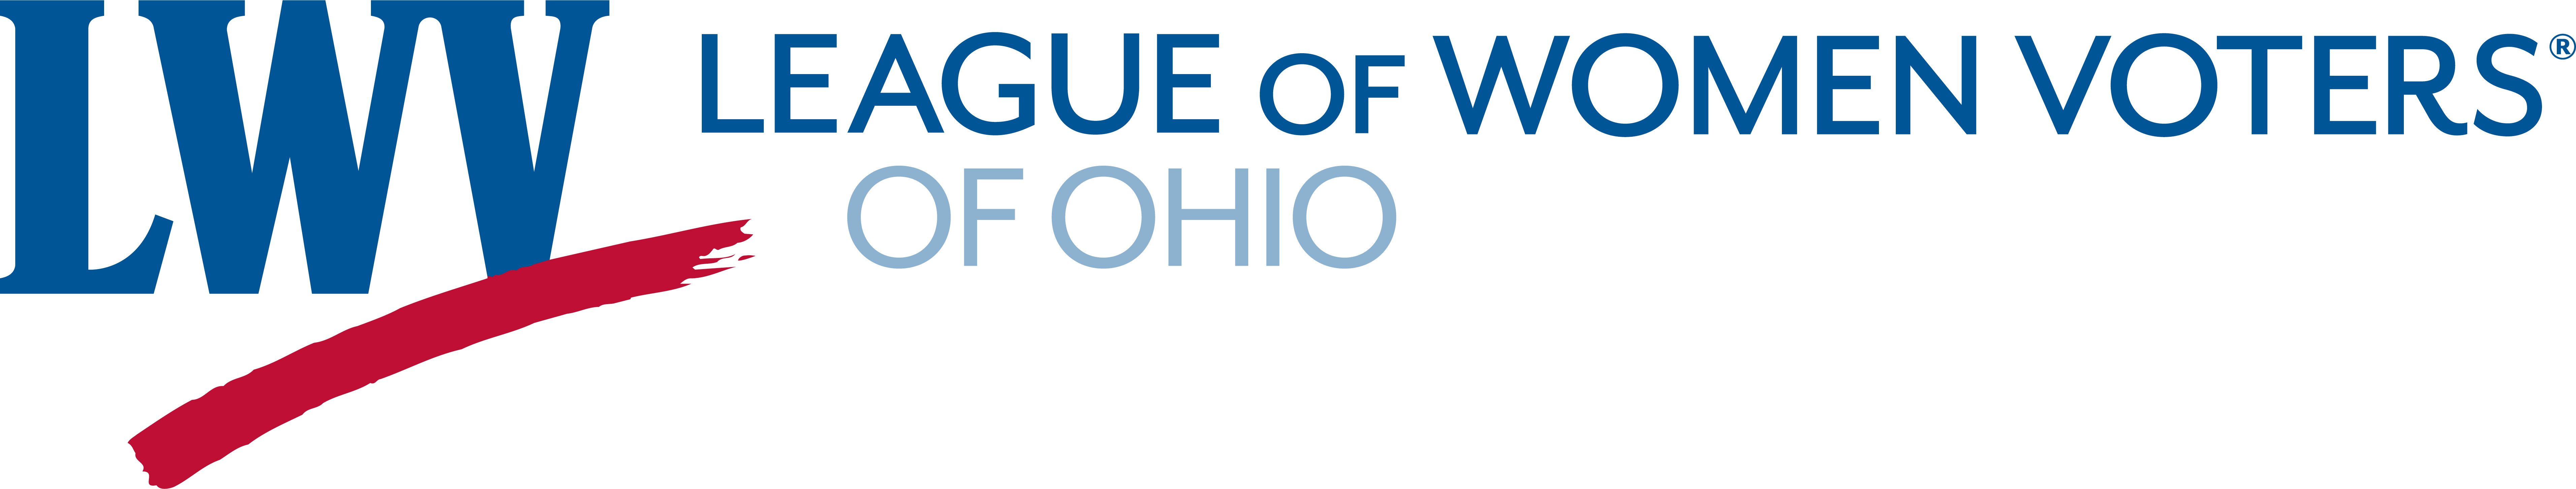 League of Women Voters of Ohio